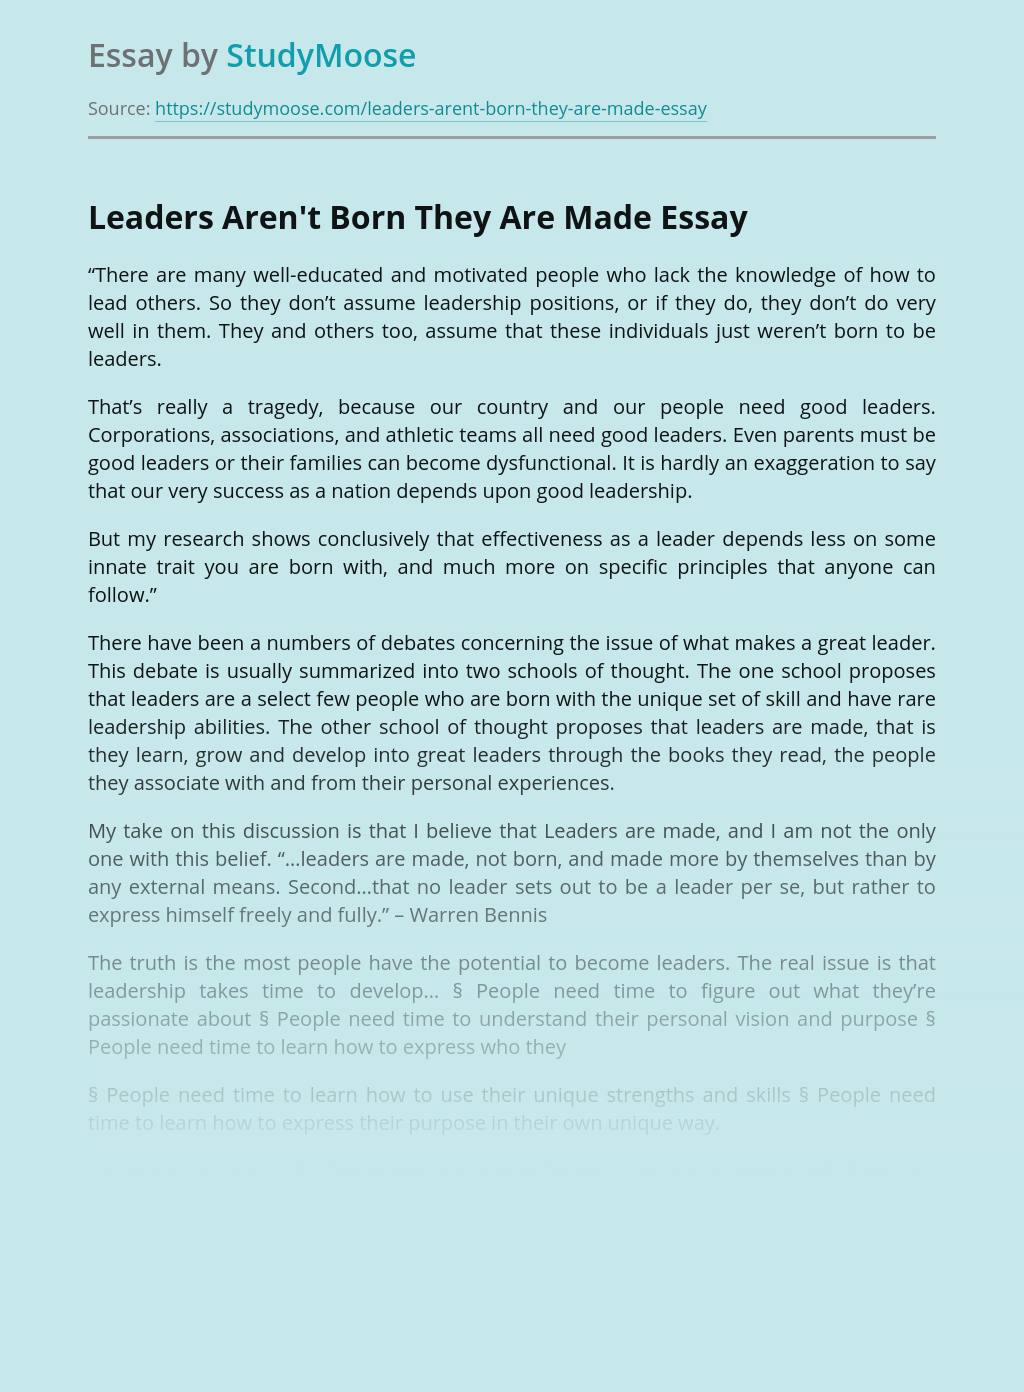 Leaders Aren't Born They Are Made